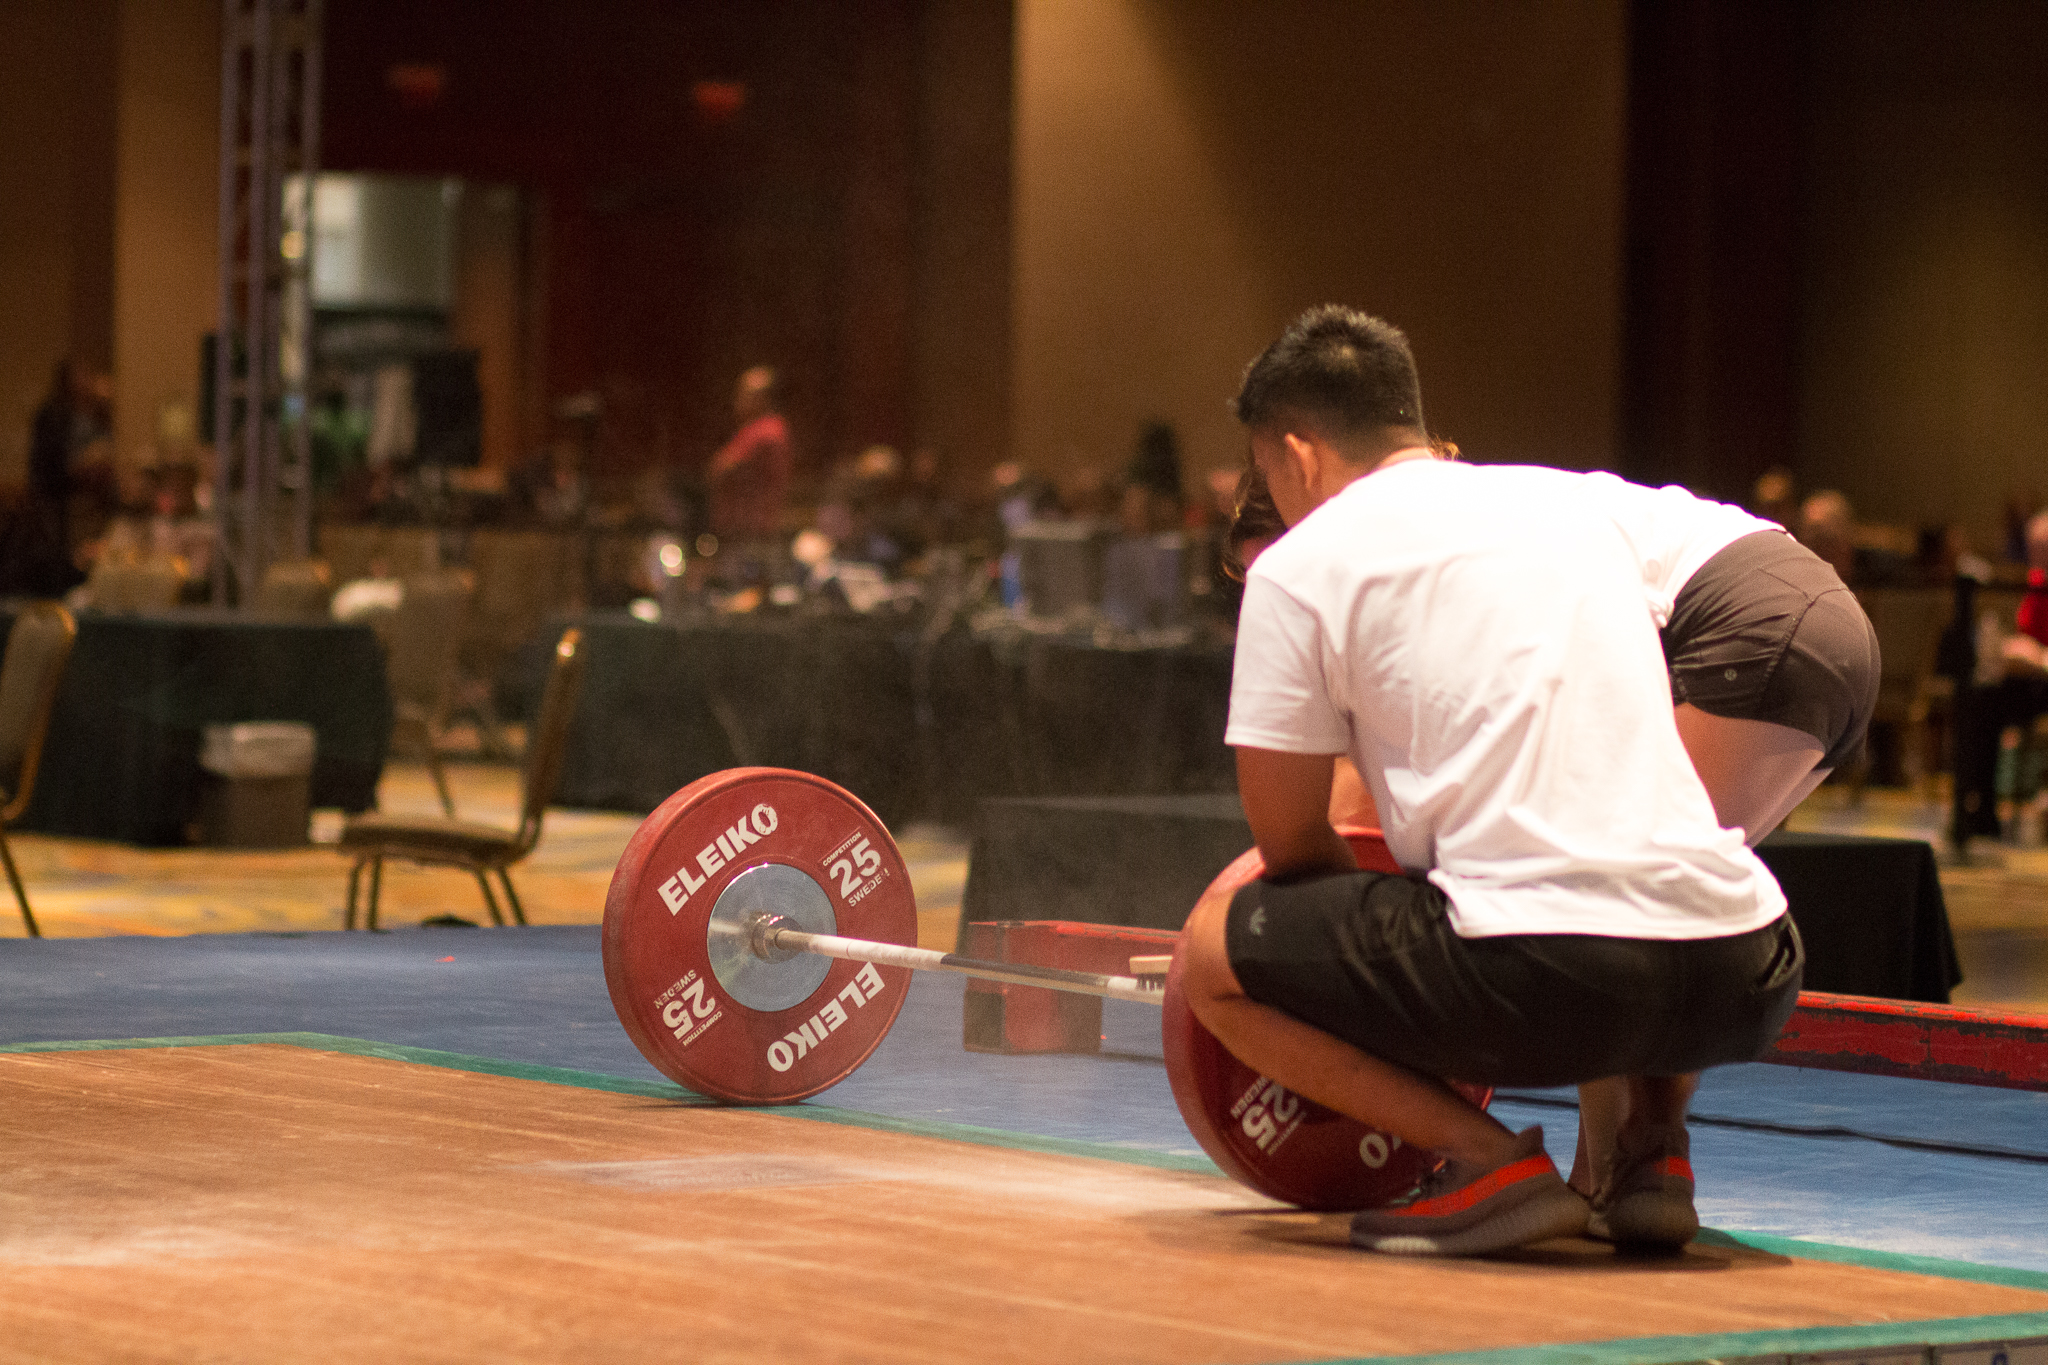 Behind-the-scence-American-Open-2016-weightlifting (9 of 10).jpg